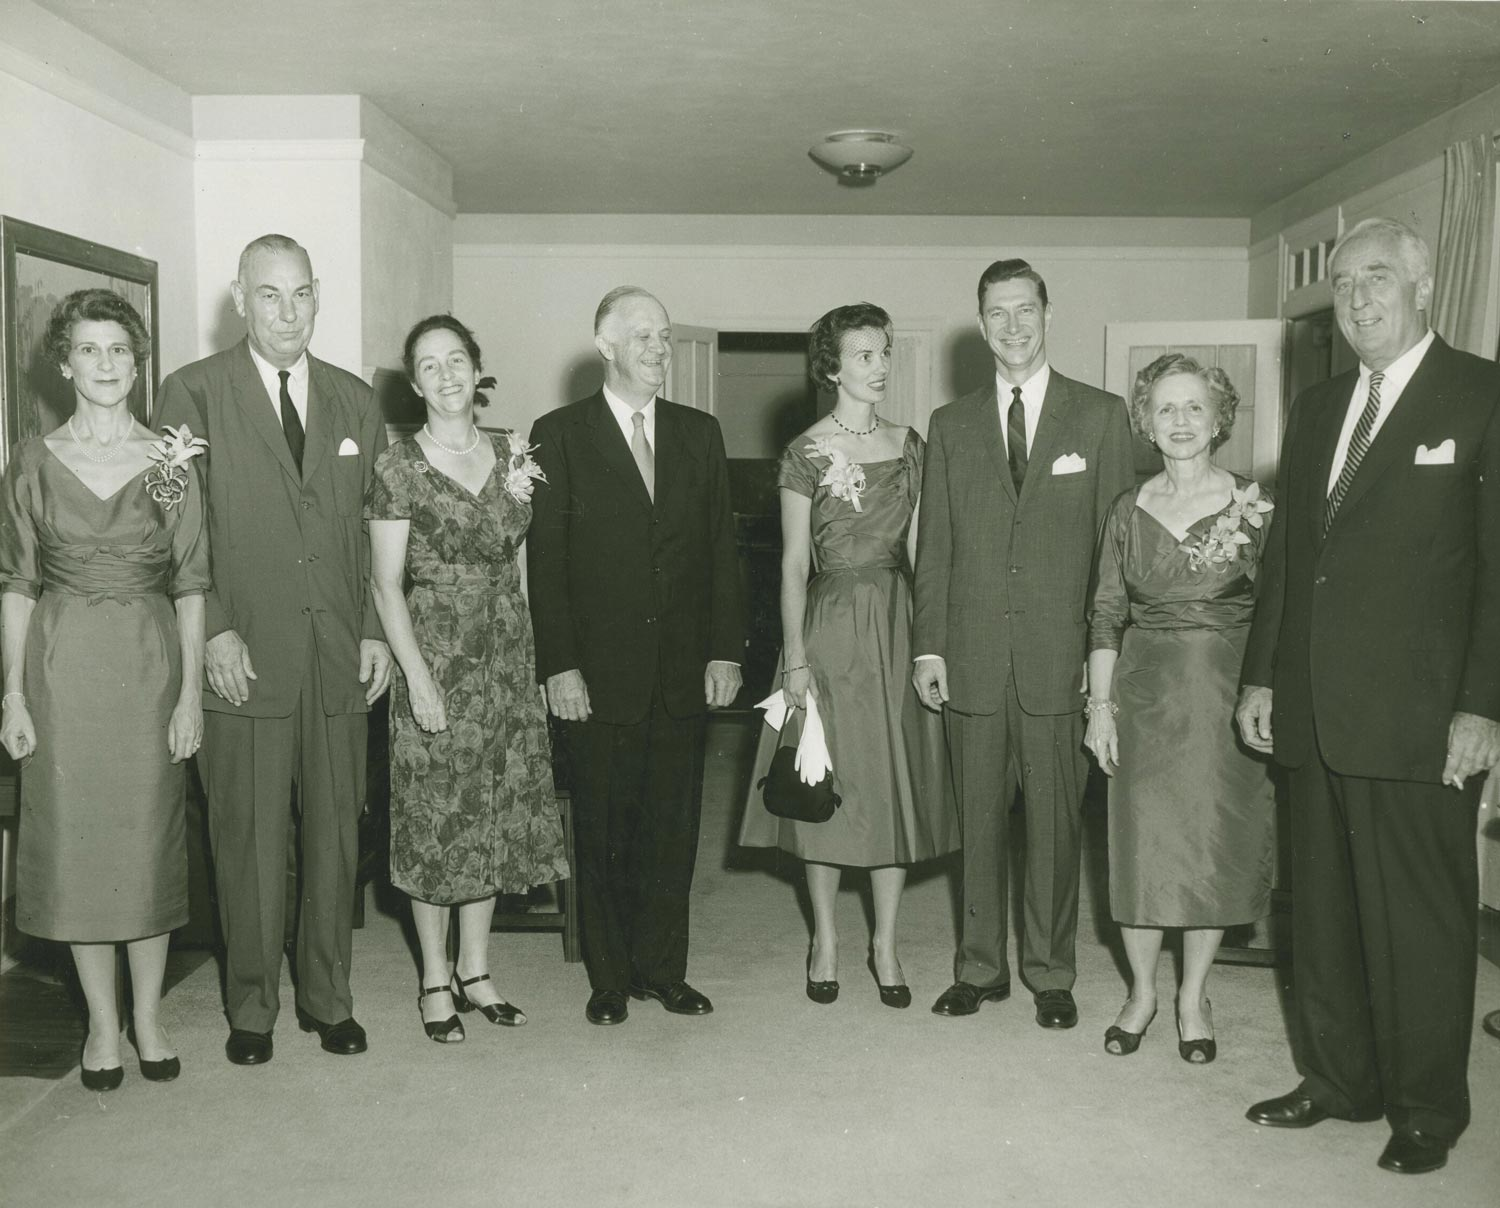 Edgar F. Shannon was UVA's fourth president. Third from the right, he is pictured here with his predecessor Darden, fourth from the left.